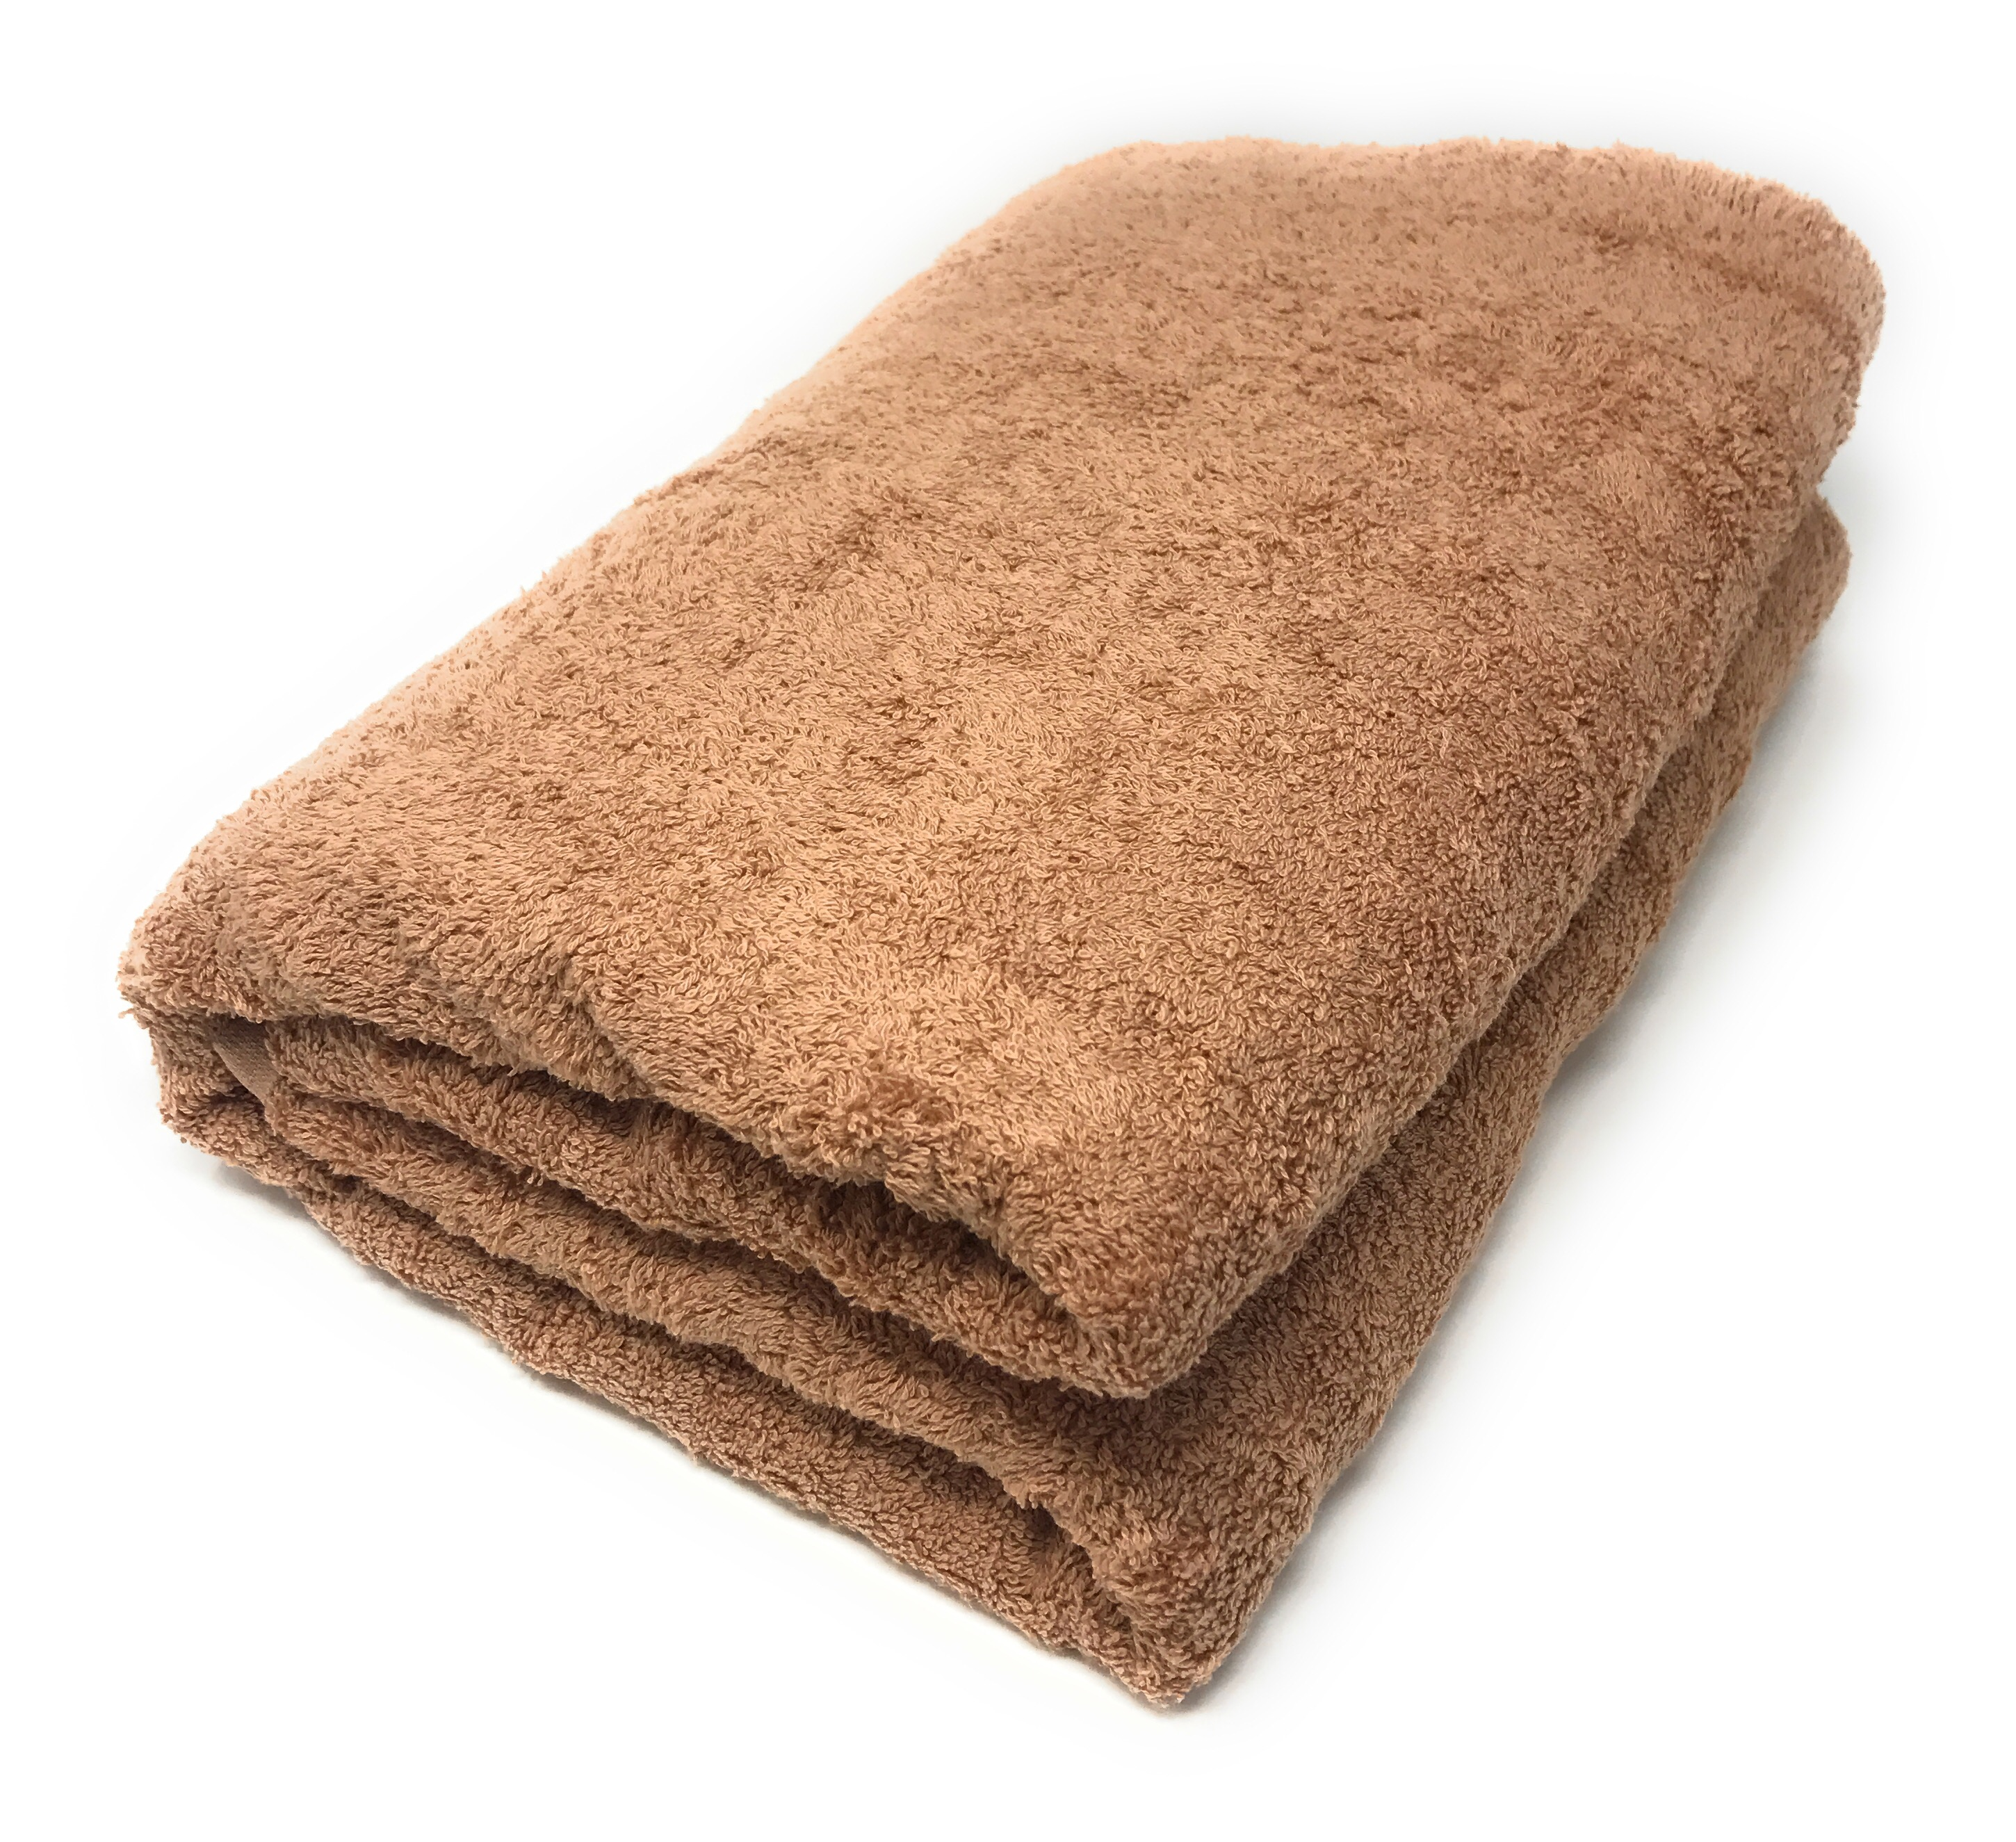 Goza Towels Cotton Oversized Bath Sheet Towel (40 x 70 inches) Camel Brown